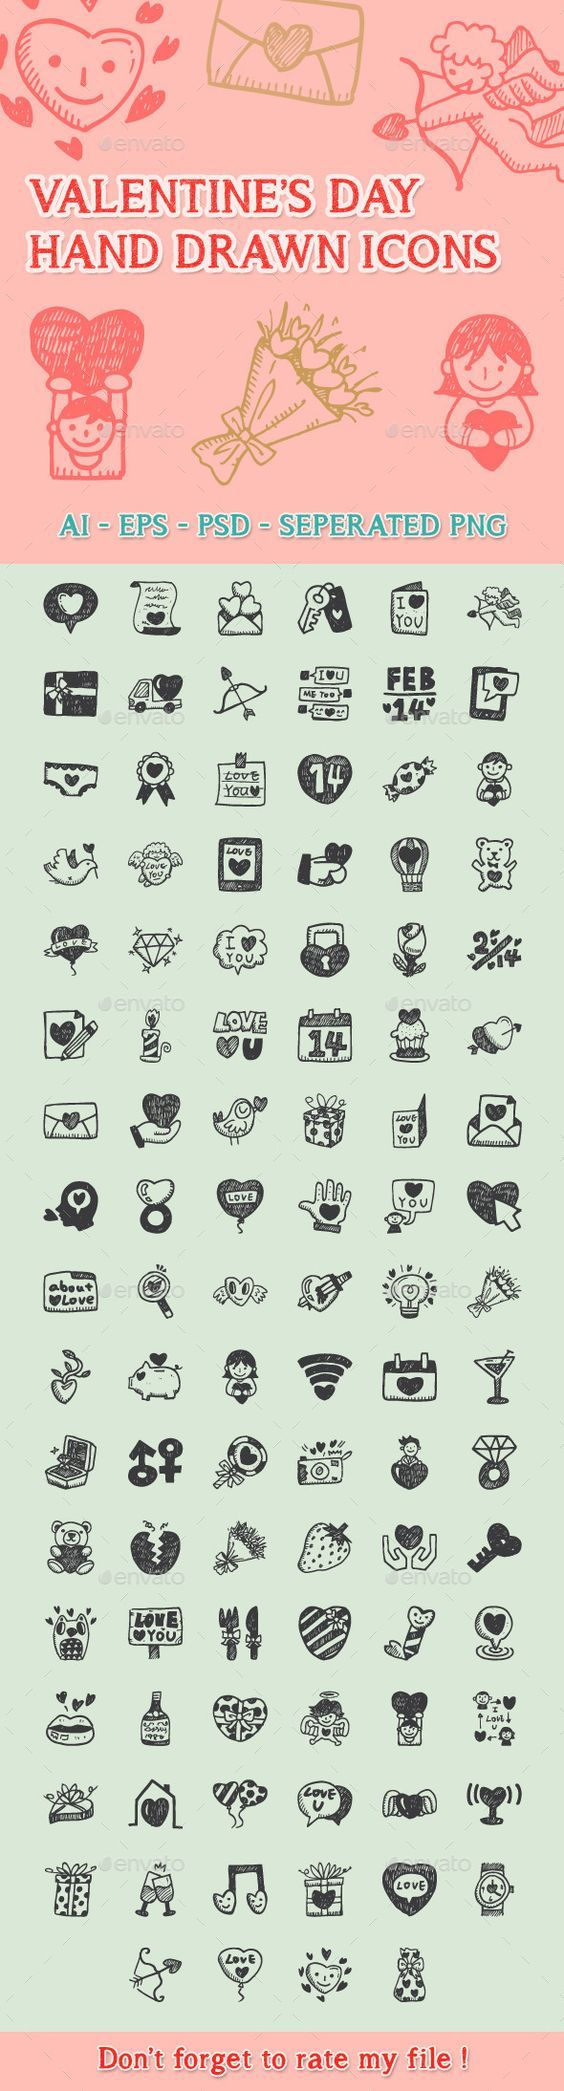 Love Hand Drawn Icons: